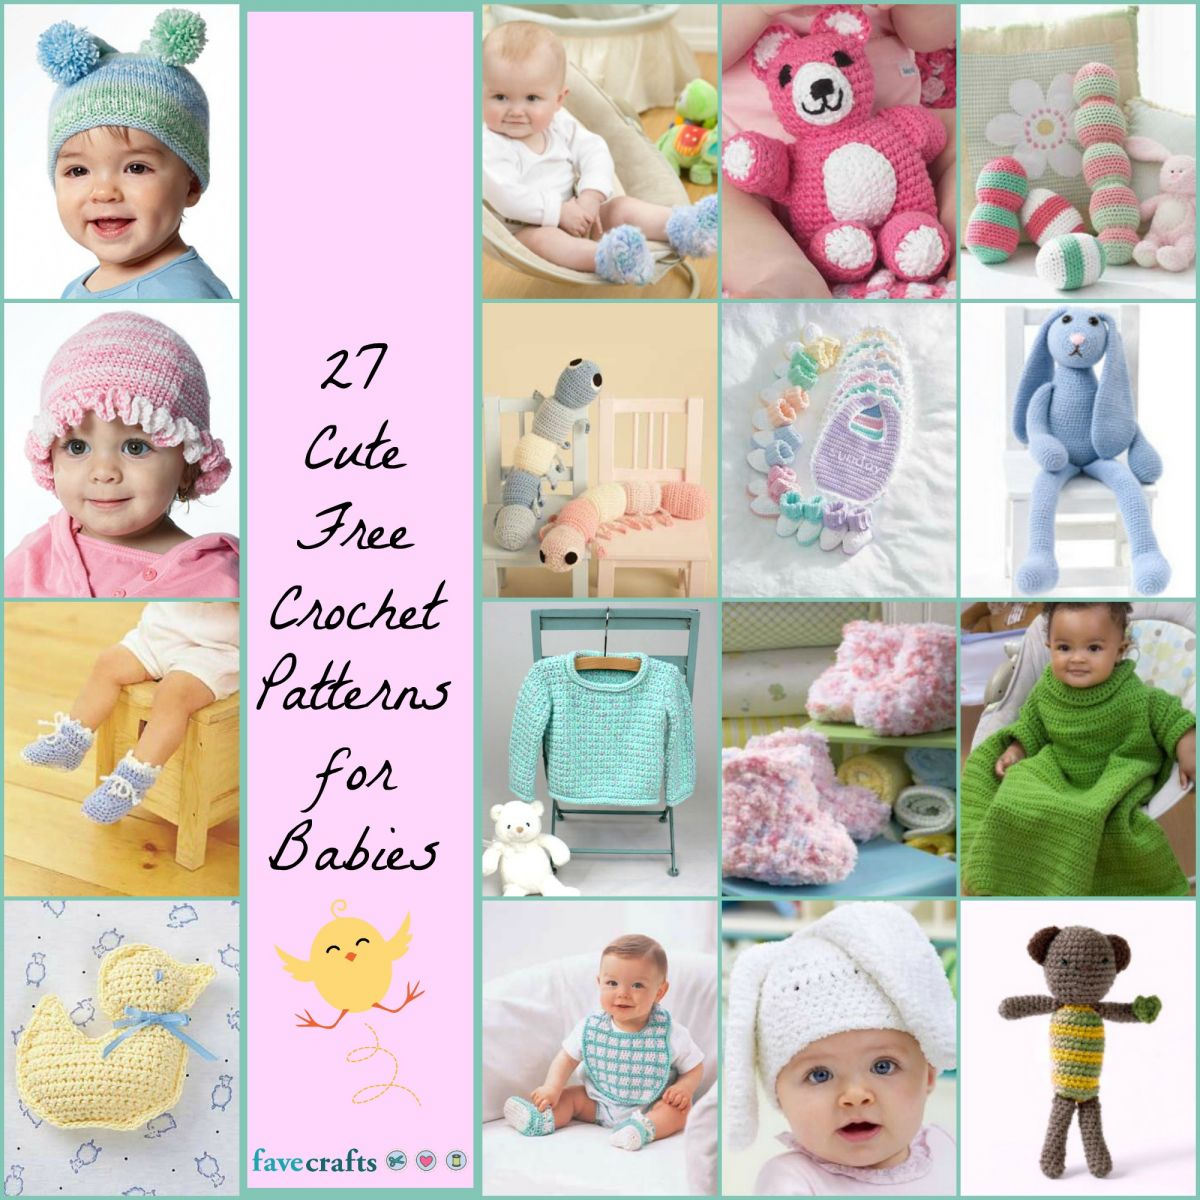 http://www.favequilts.com/master_images/Crochet/crochet-patterns-for-babies.jpg